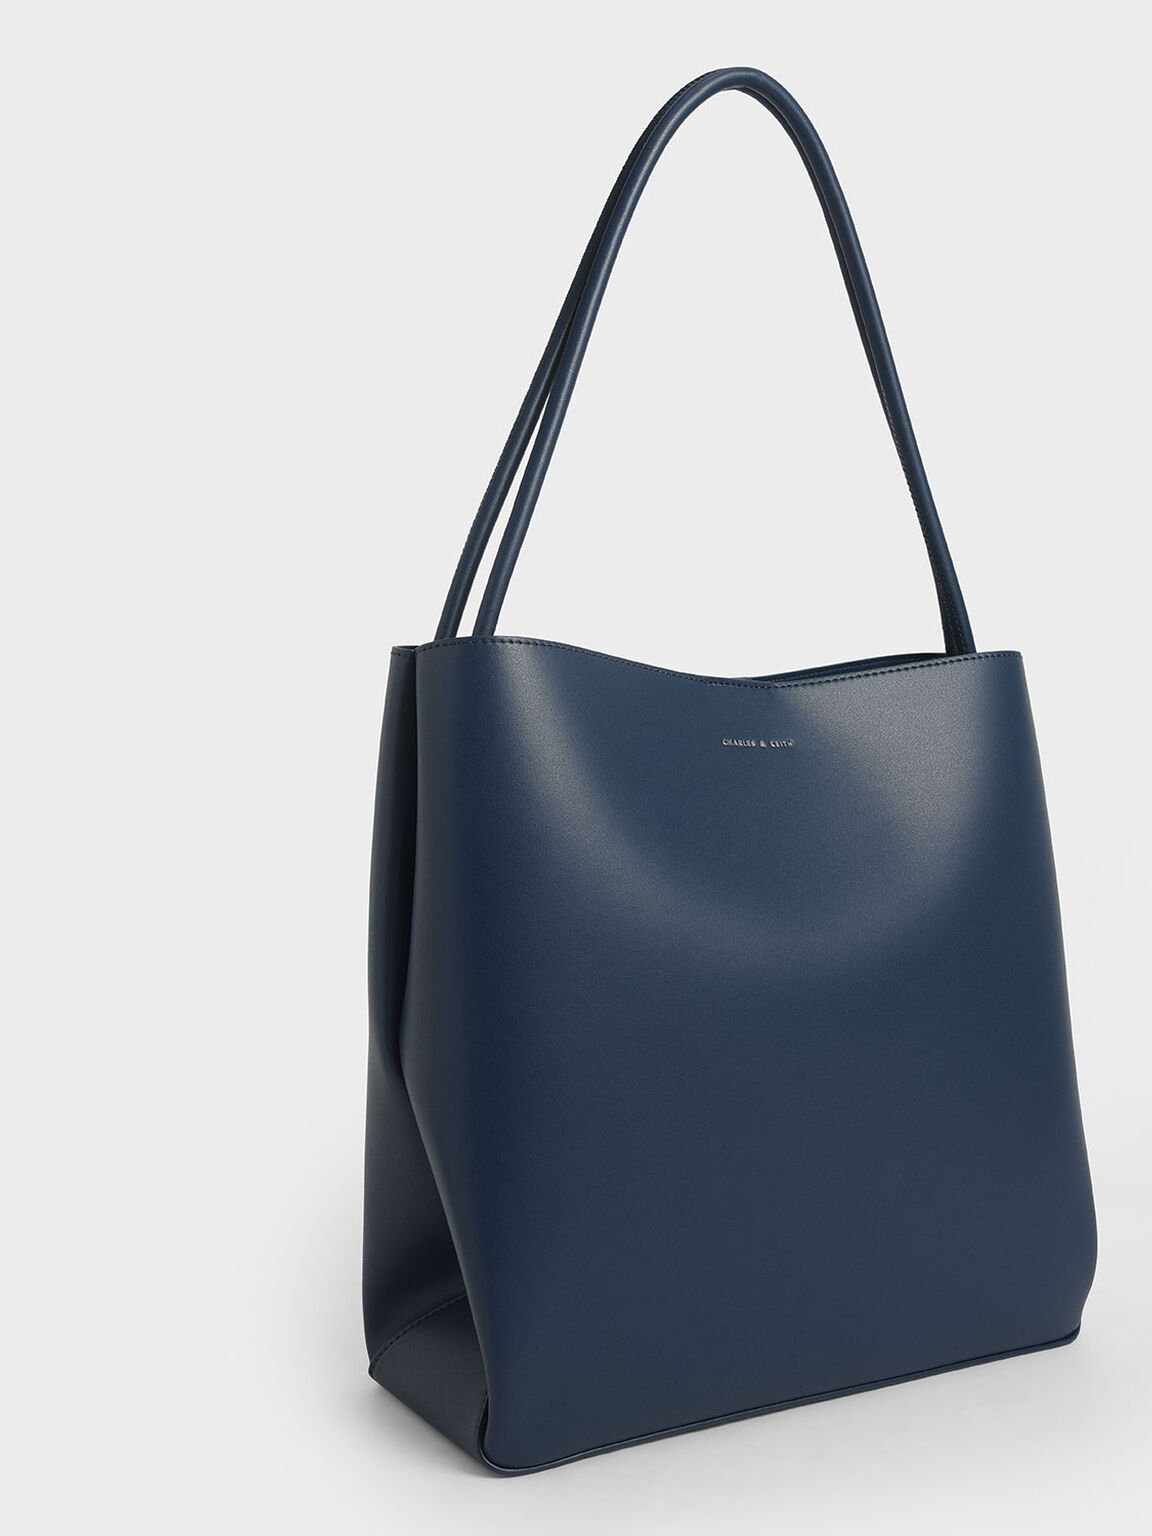 Double Handle Tote Bag, Blue, hi-res